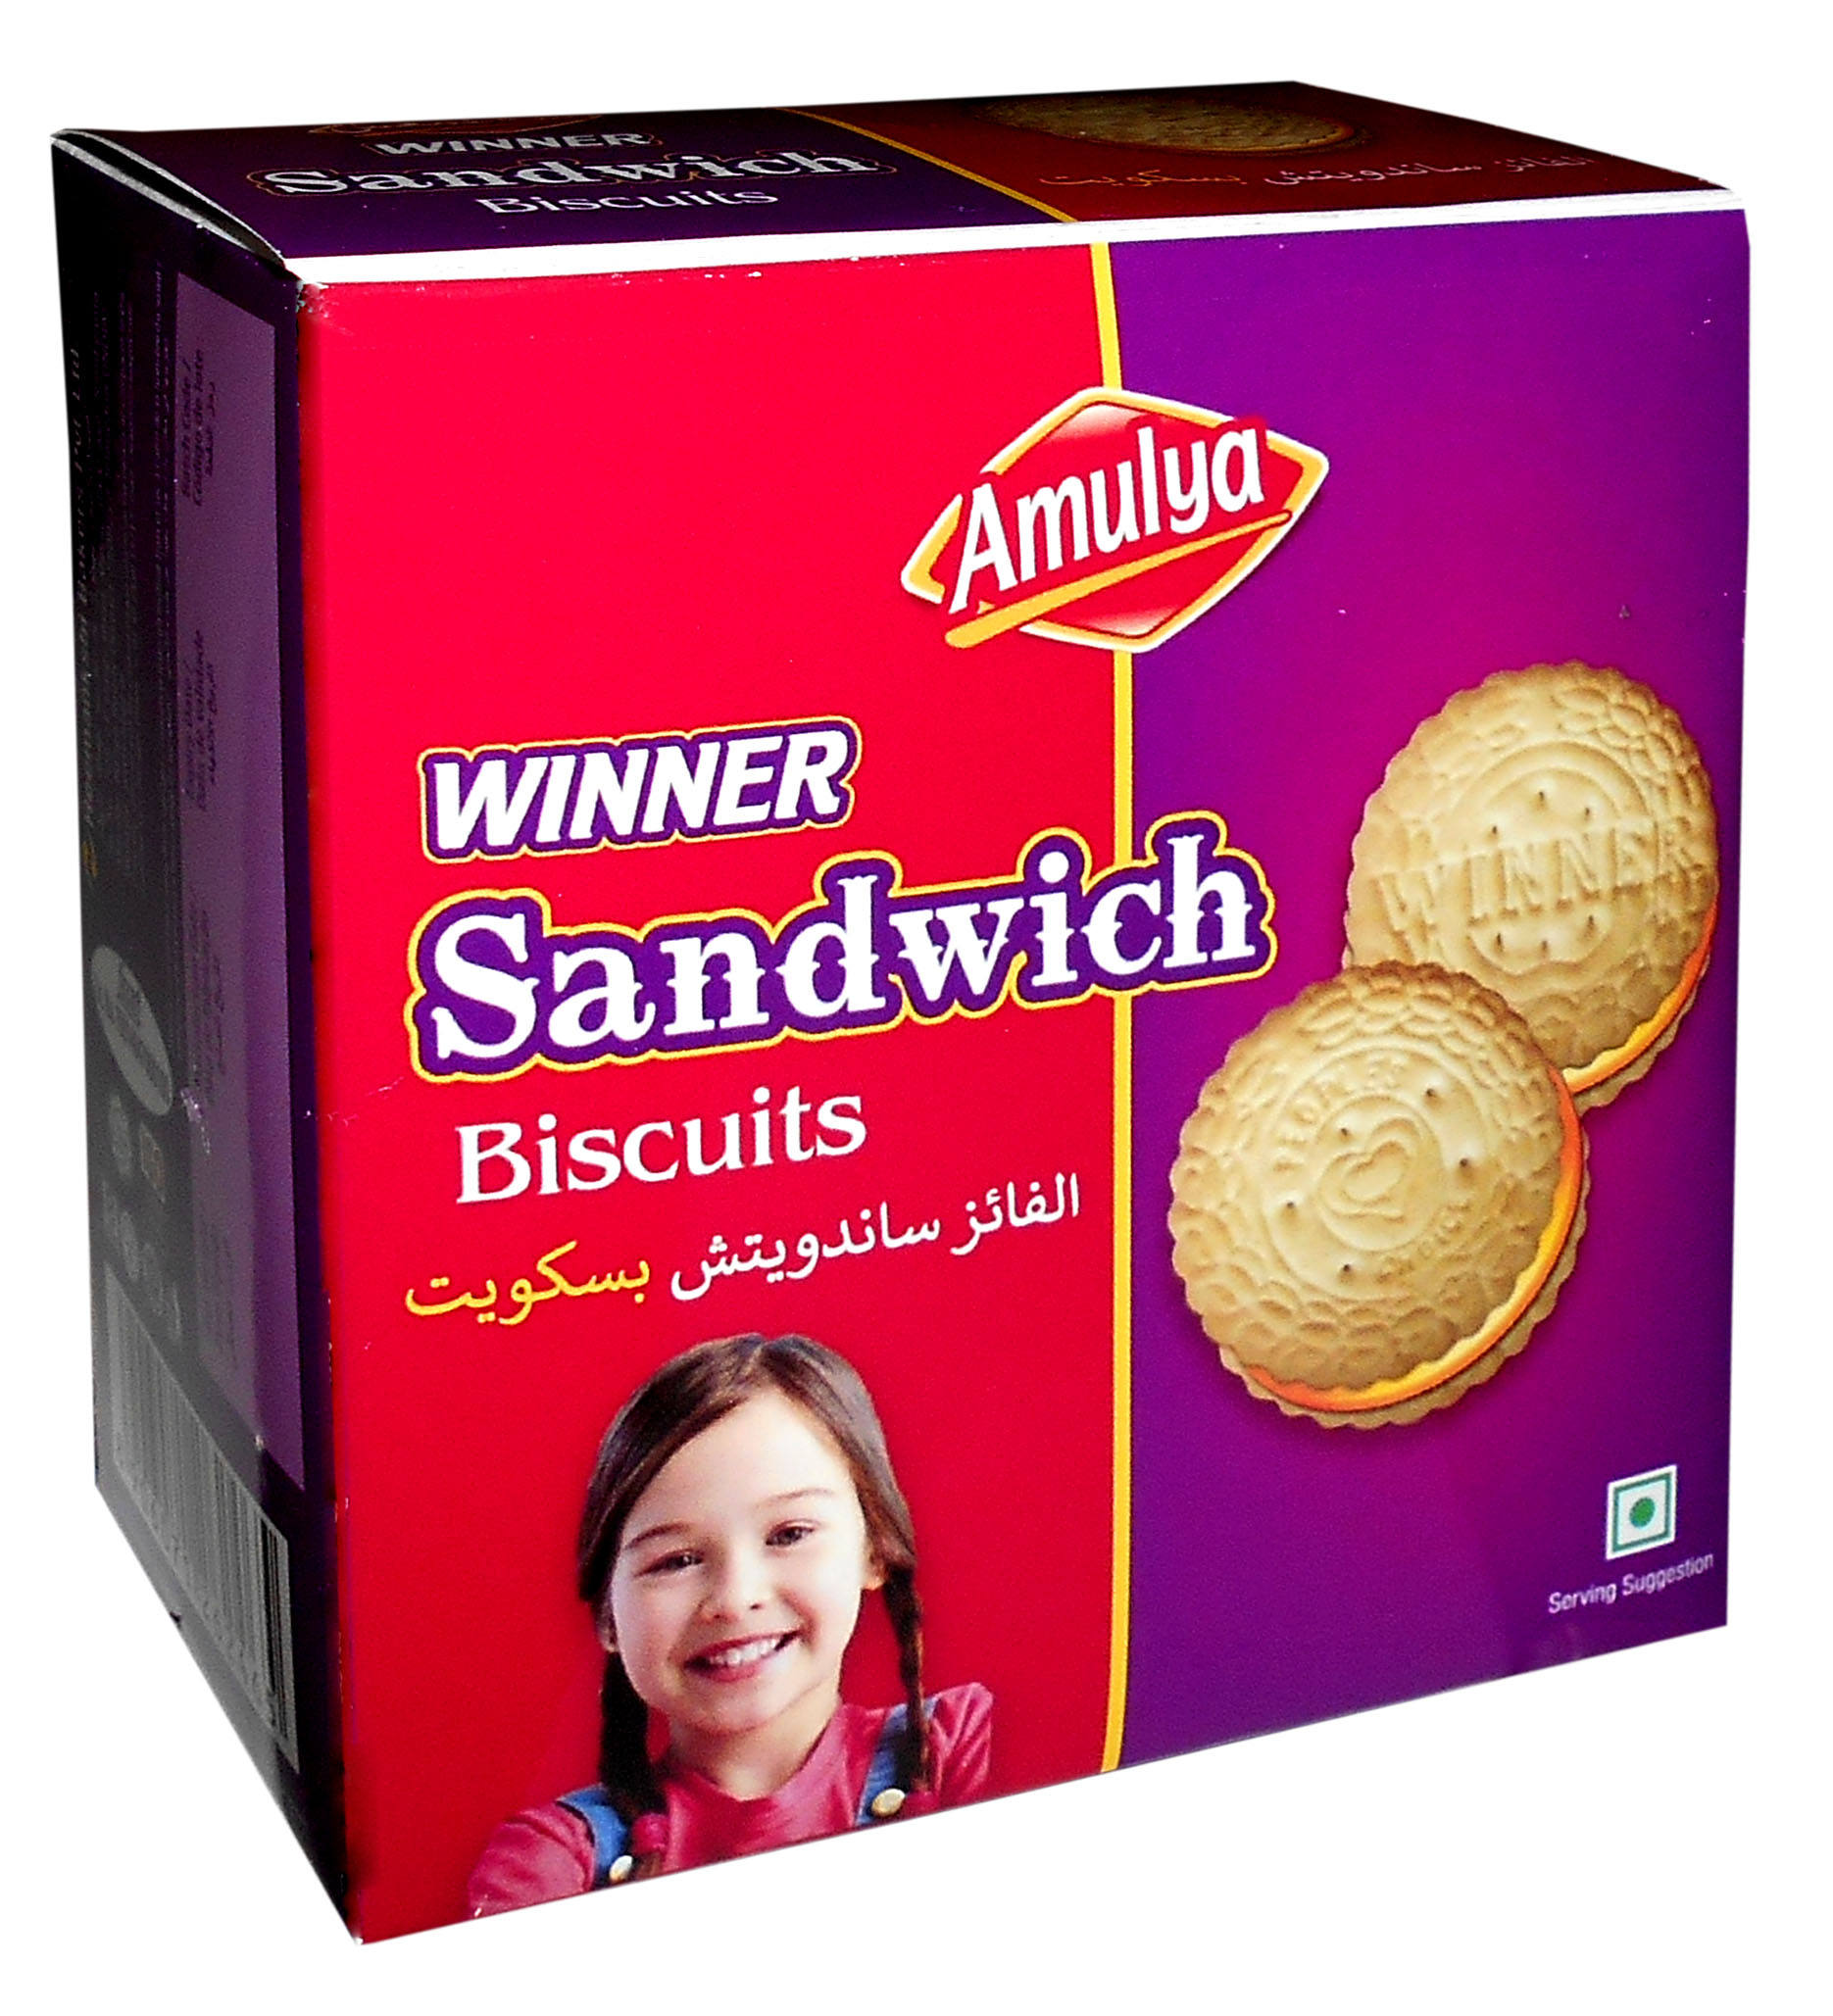 Winner Cream Cookies 100 gram Deliciously Rich Creme filled Sandwich Milk Vanilla Biscuits popular design Fast moving in Somalia